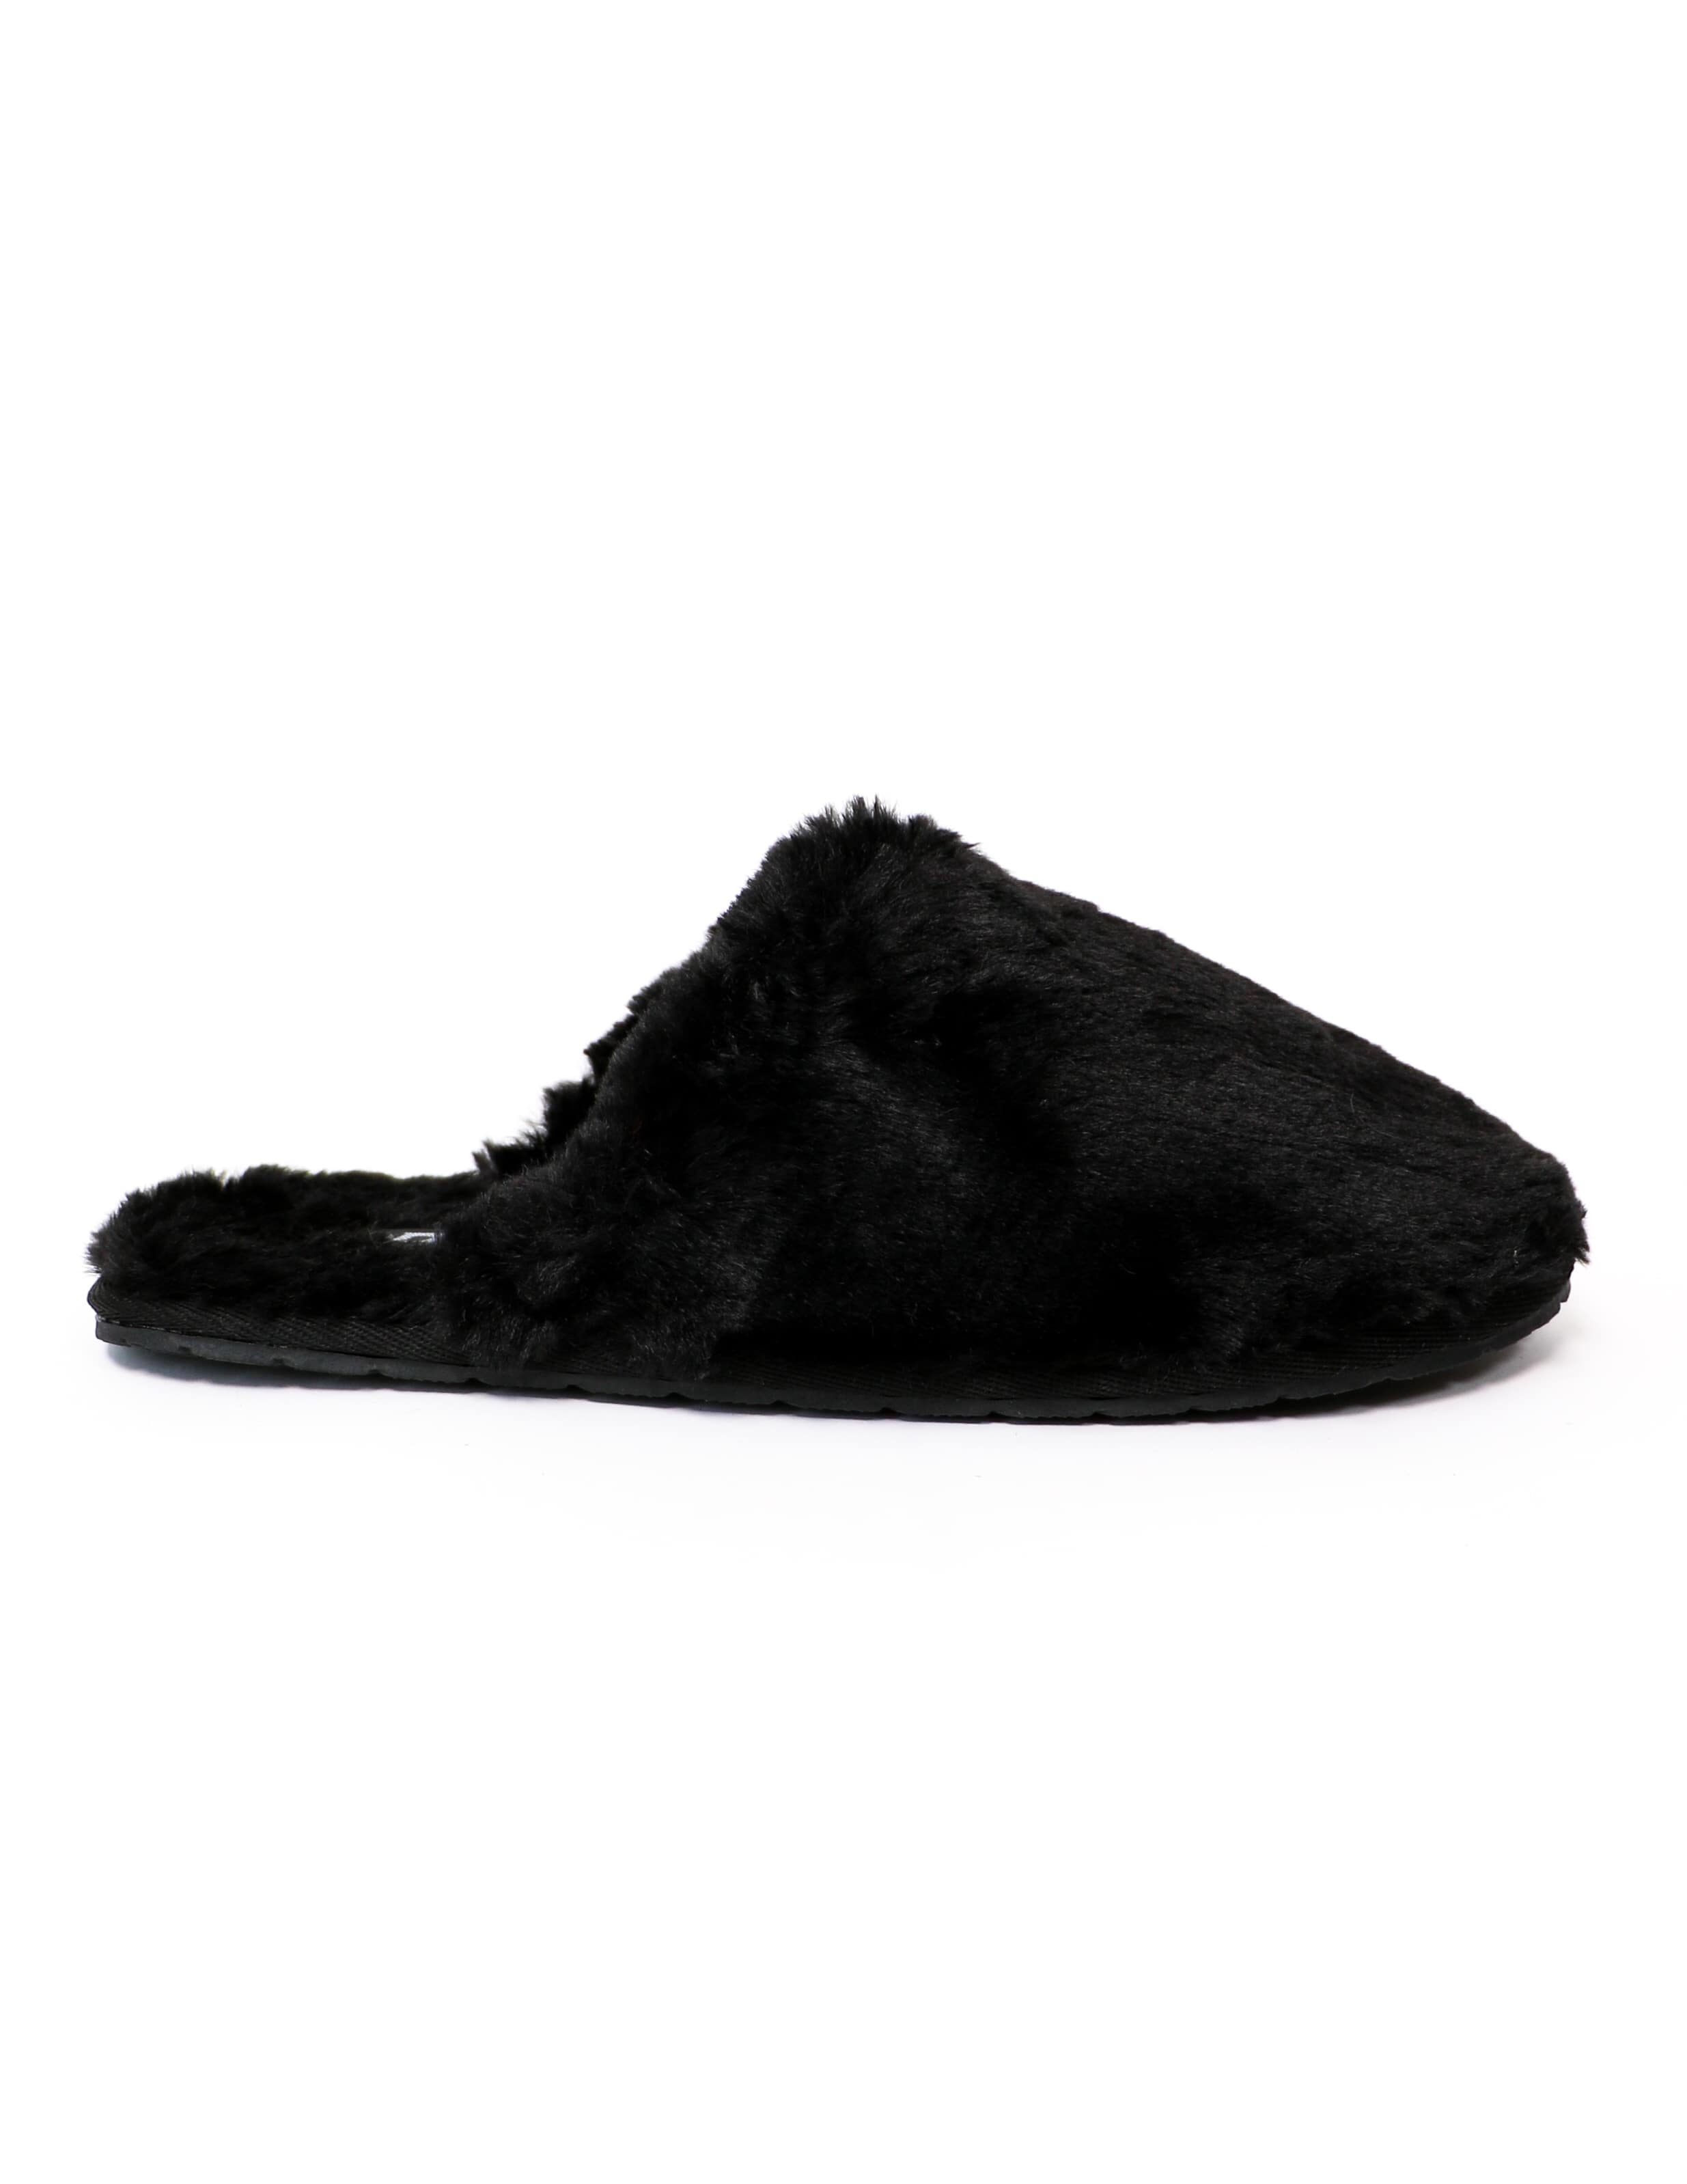 Black fuzzy wuzzy slippers on white background - elle bleu shoes